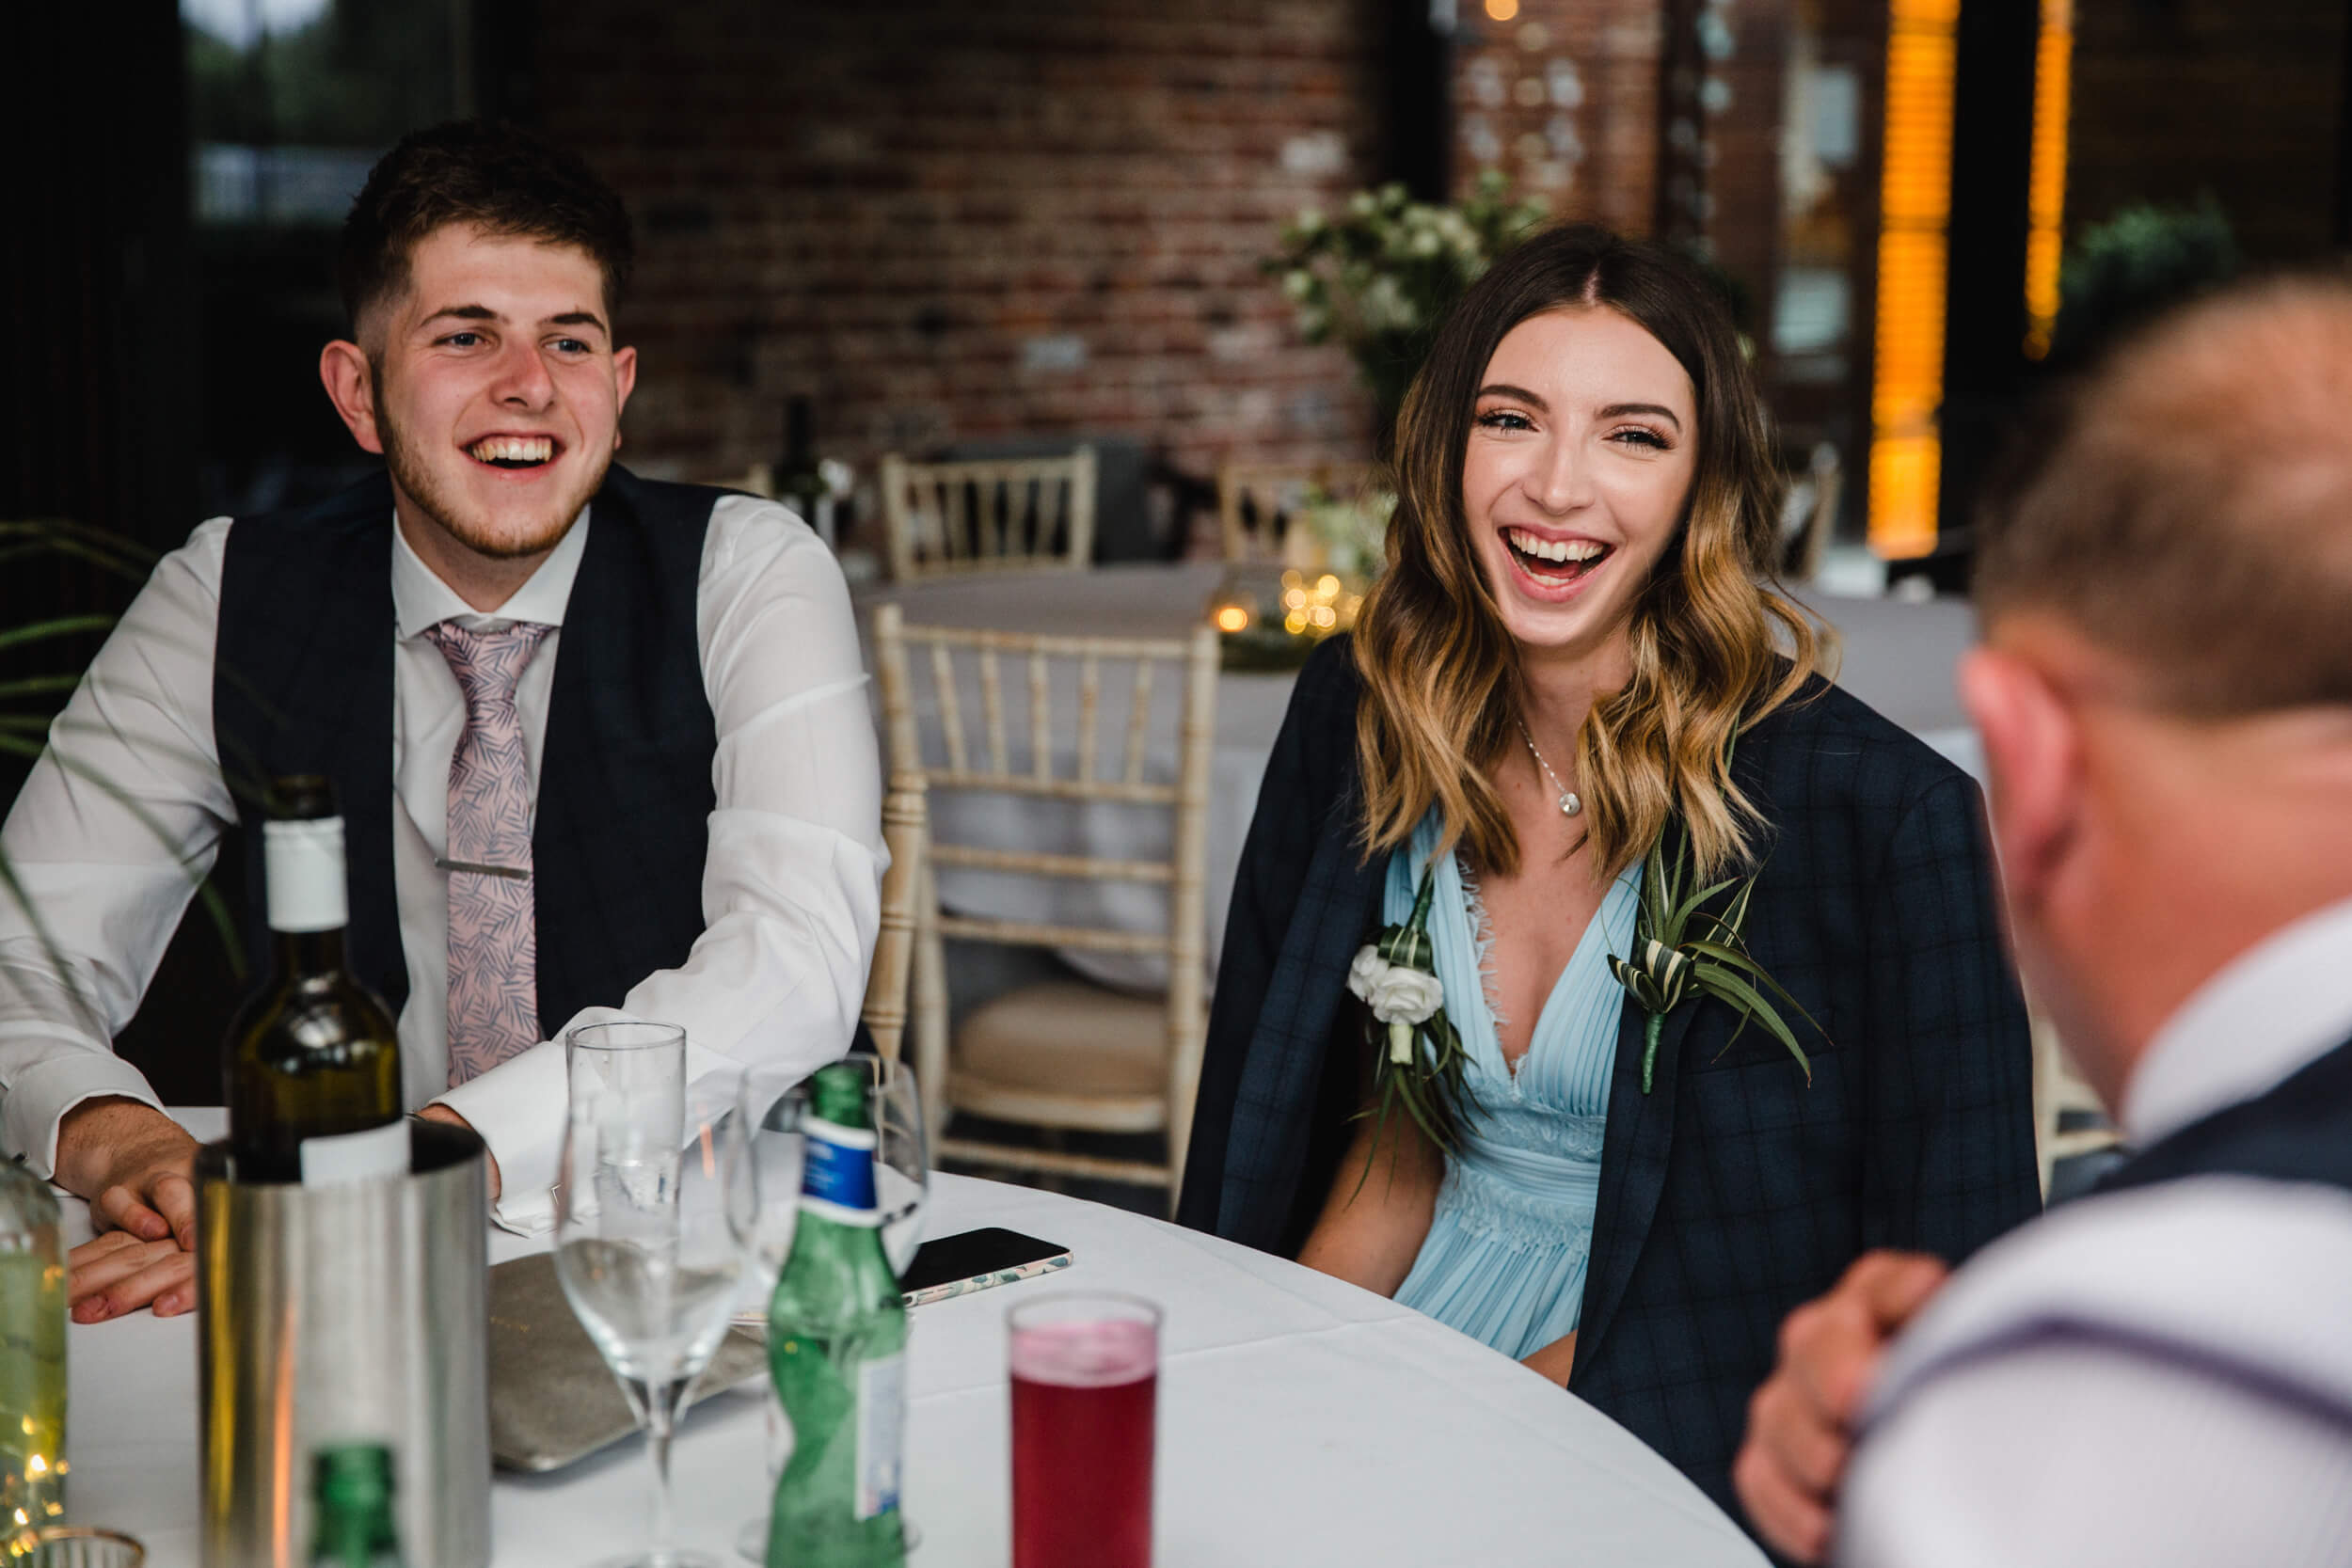 wedding guests laughing at base jokes with family